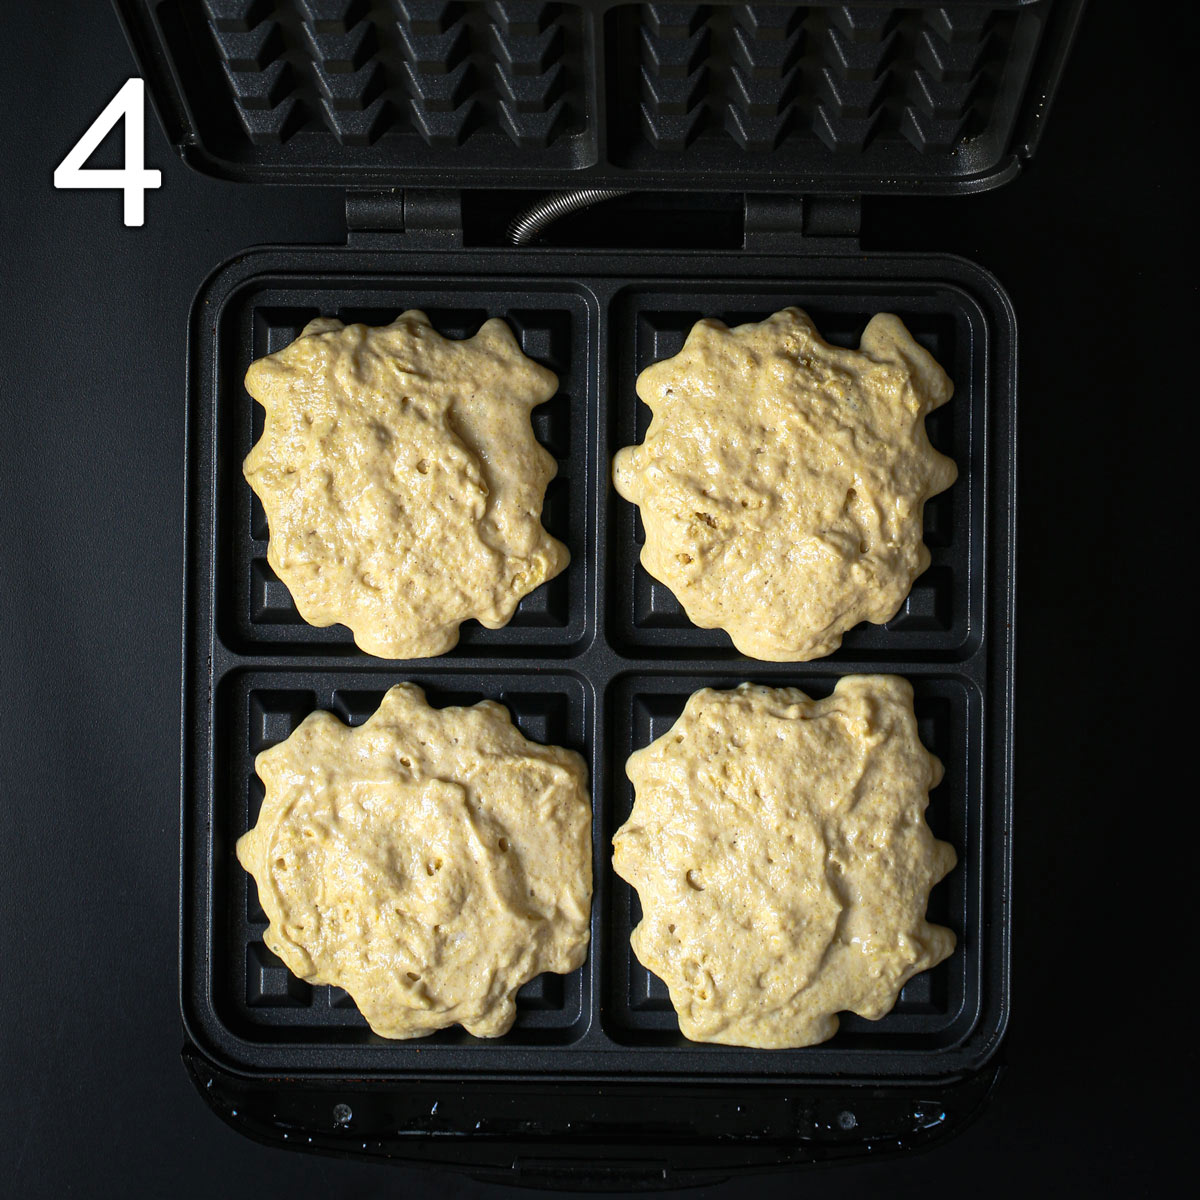 cornbread waffle batter scooped into each of four sections of a belgian waffler.